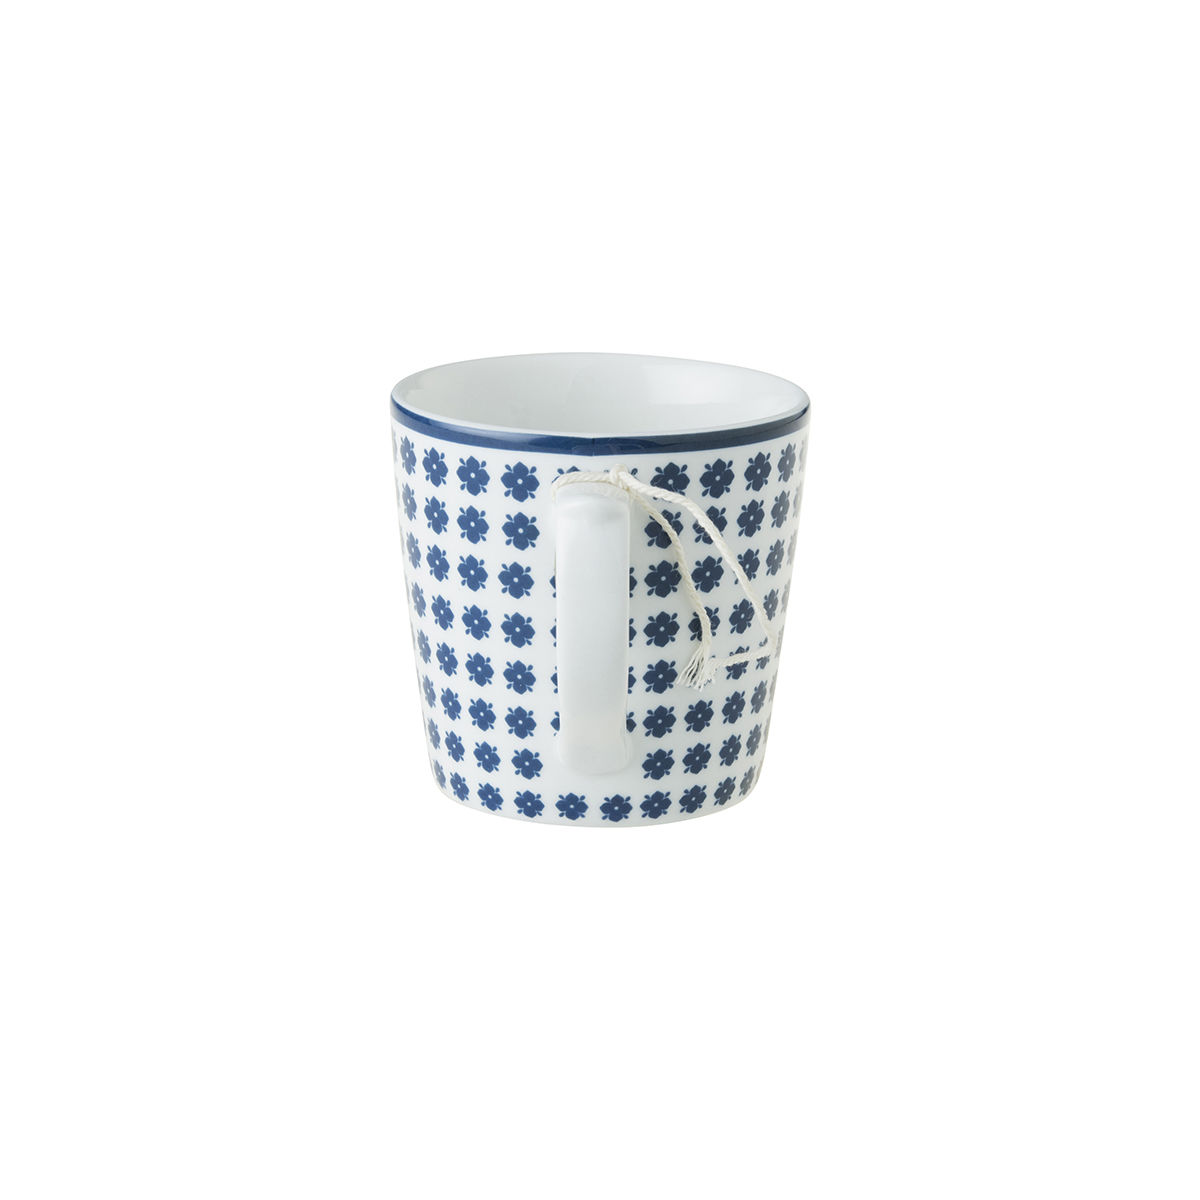 Laura Ashley Mug 7.5 oz Humble Daisy - product images  of